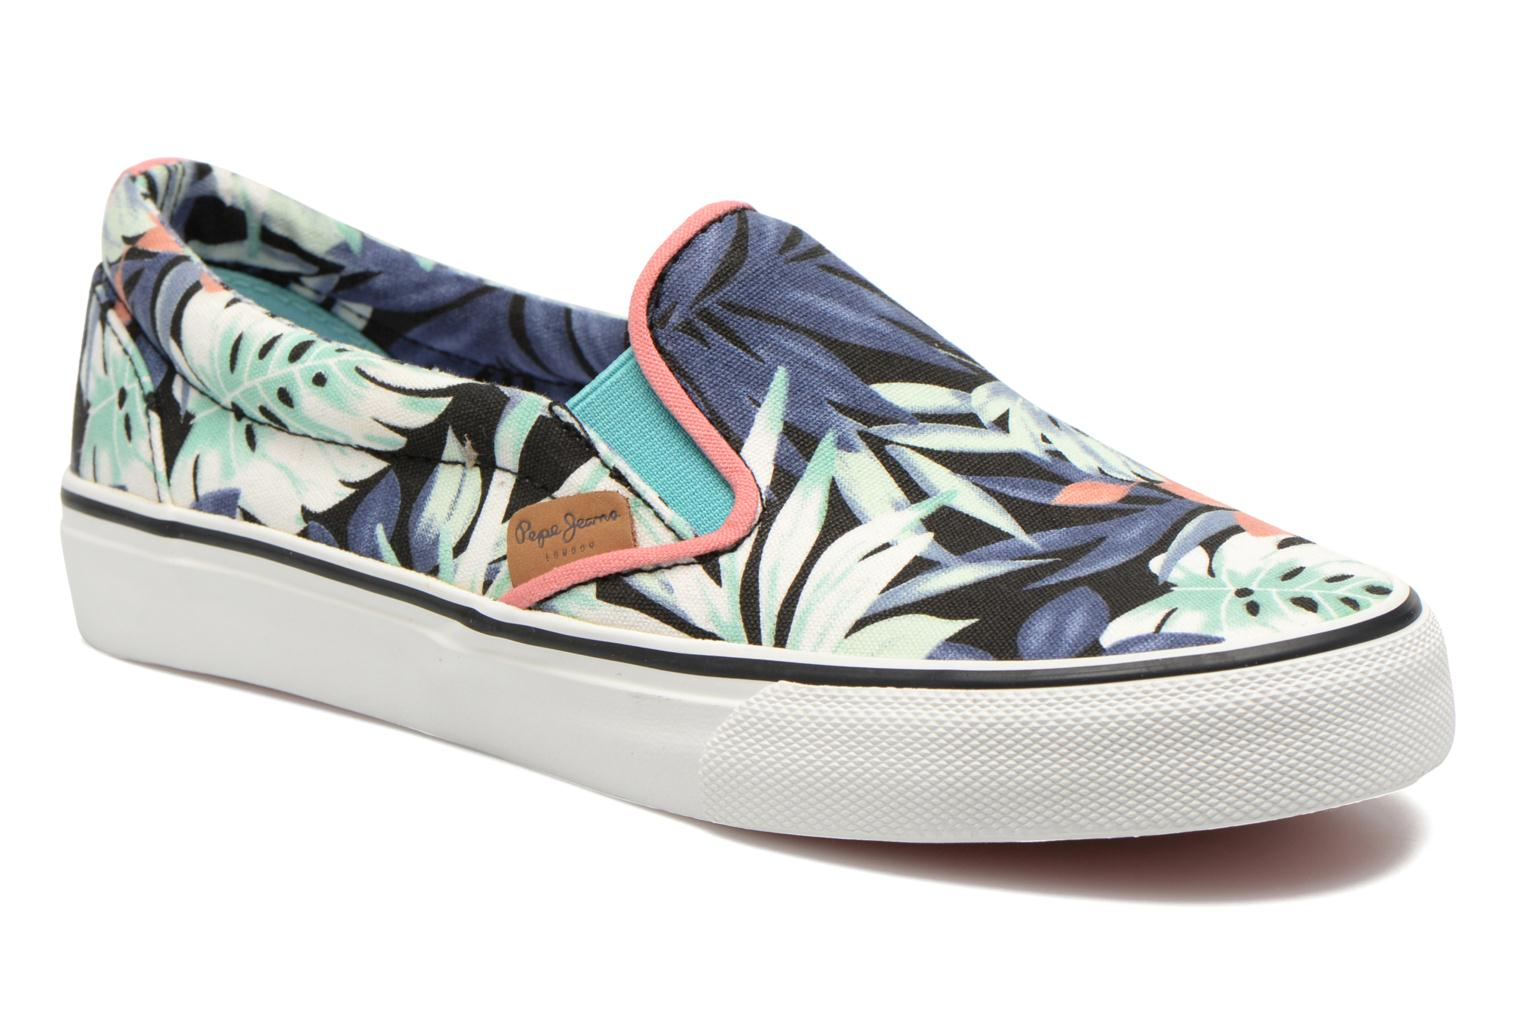 Baskets Pepe jeans Alford Jungle Multicolore vue détail/paire